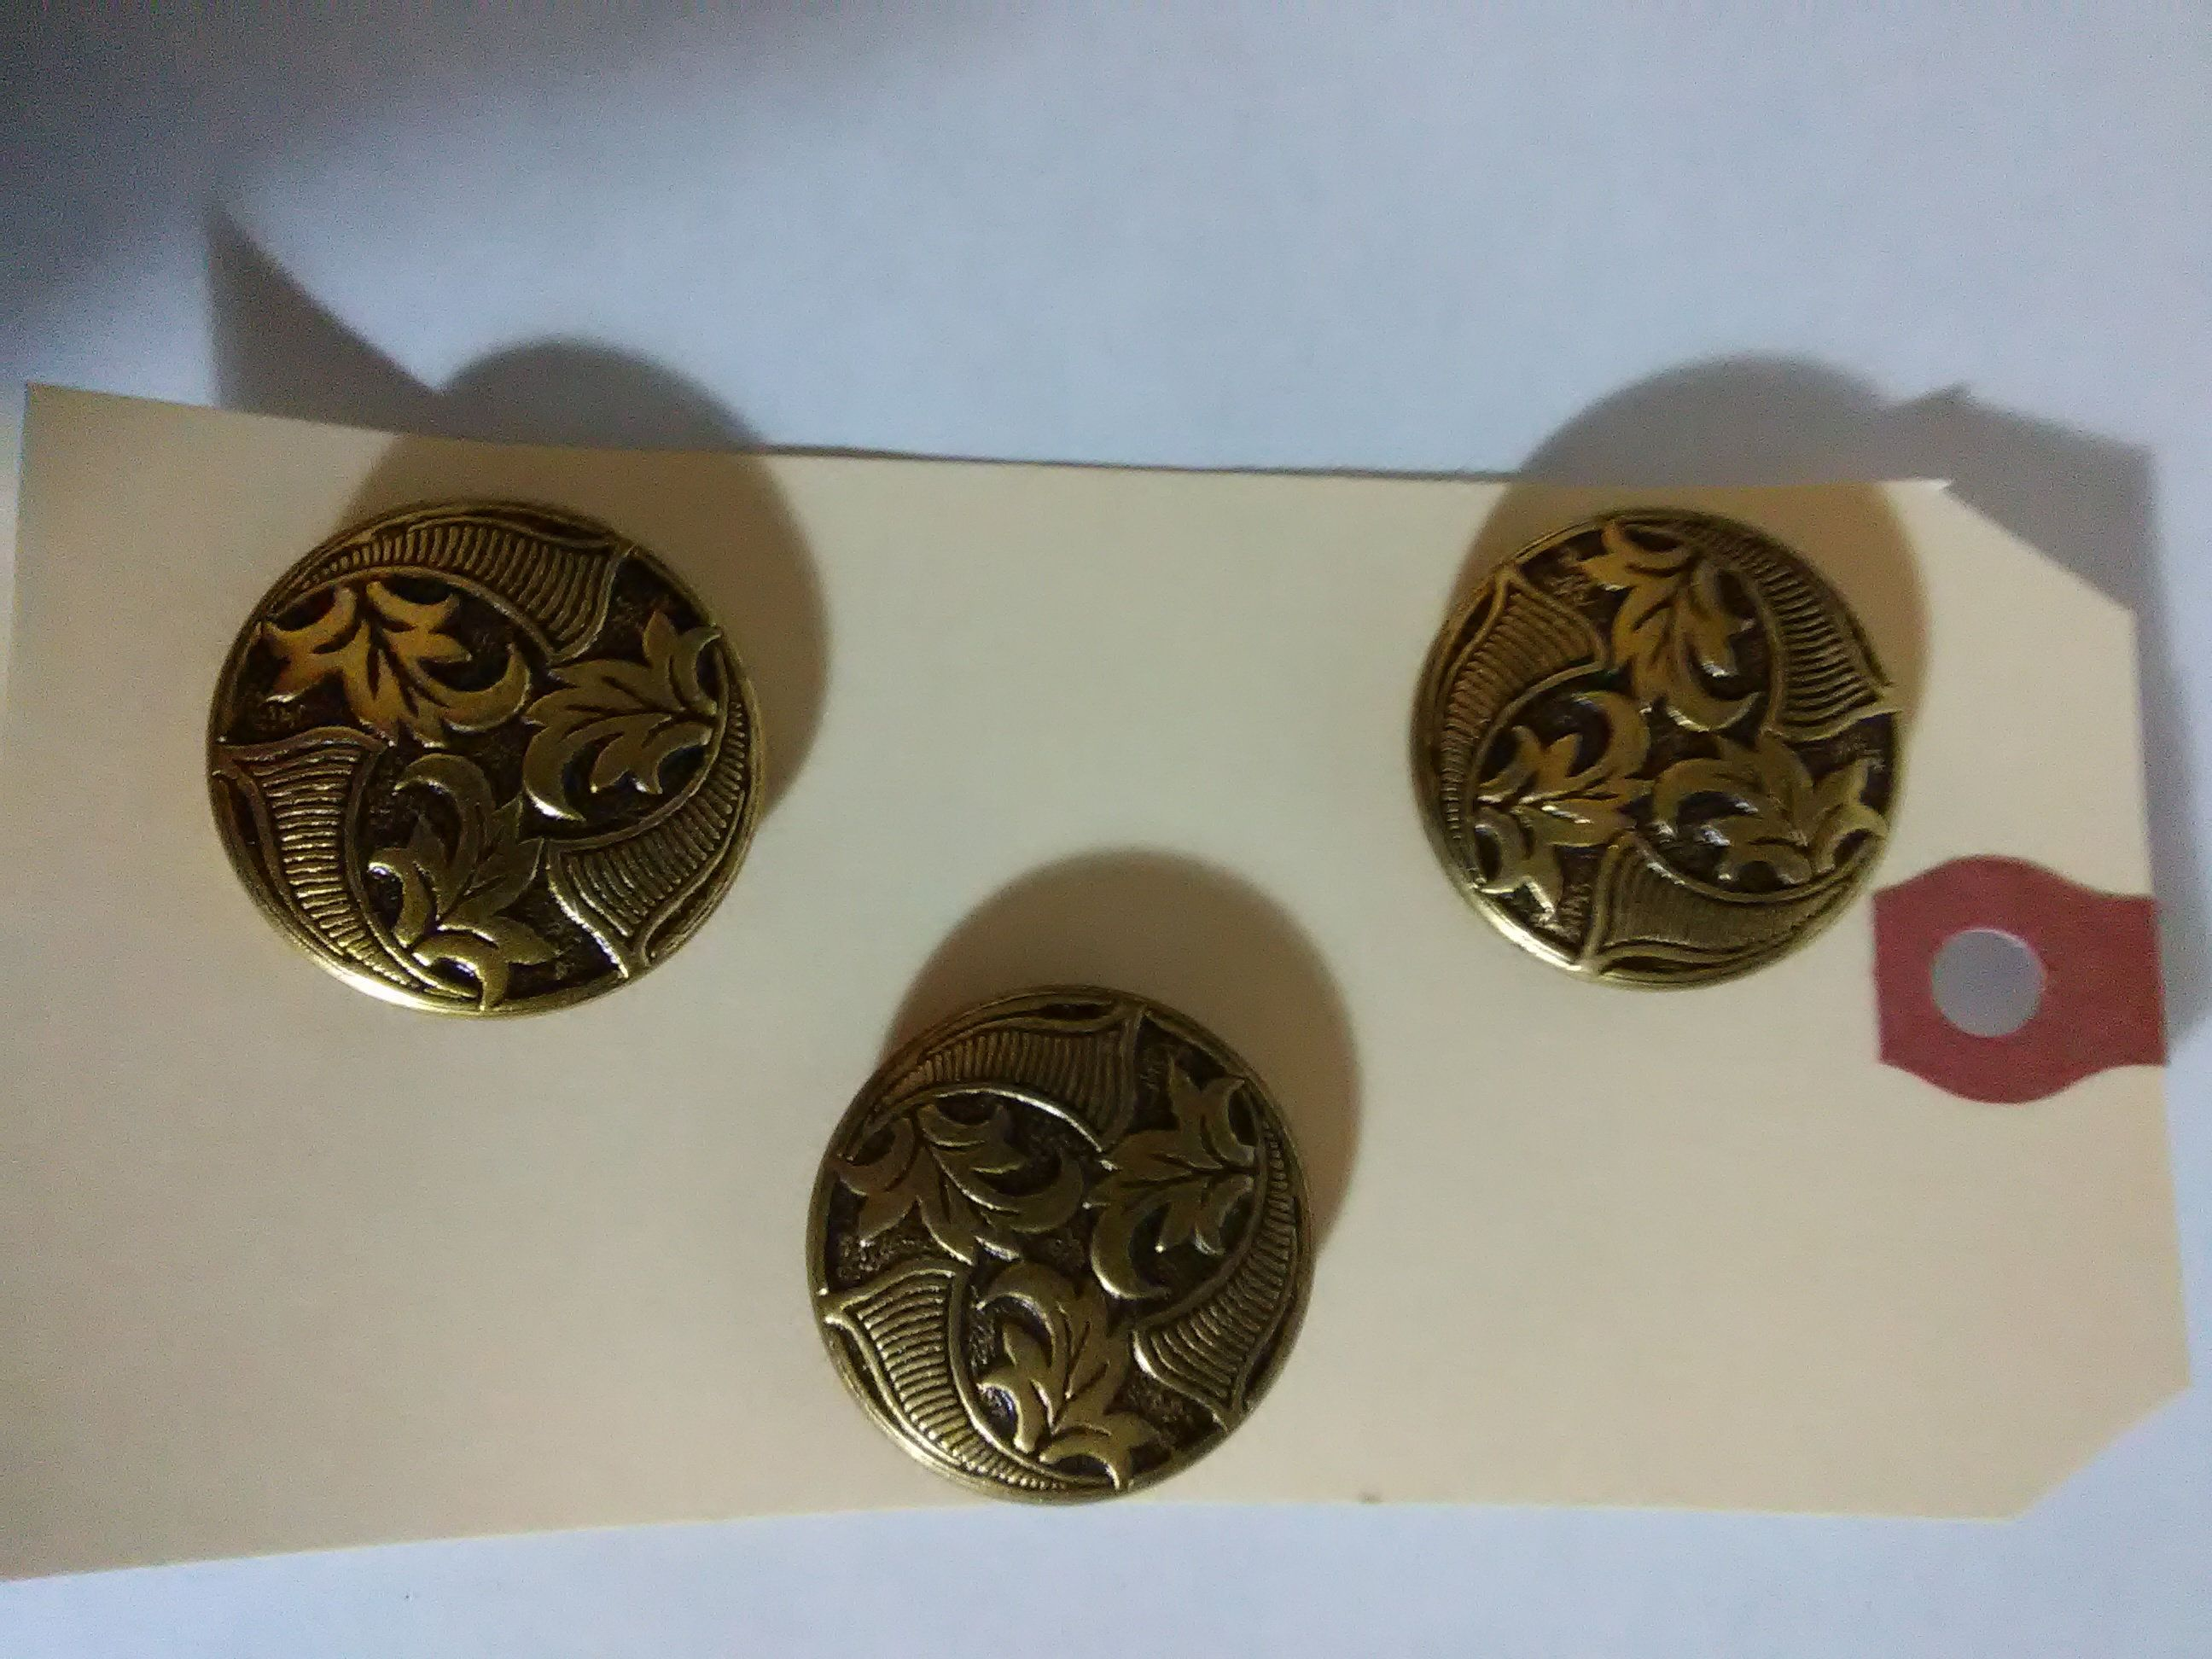 Set of 3 Vintage Metal Coat Buttons with Incised Leaves Self